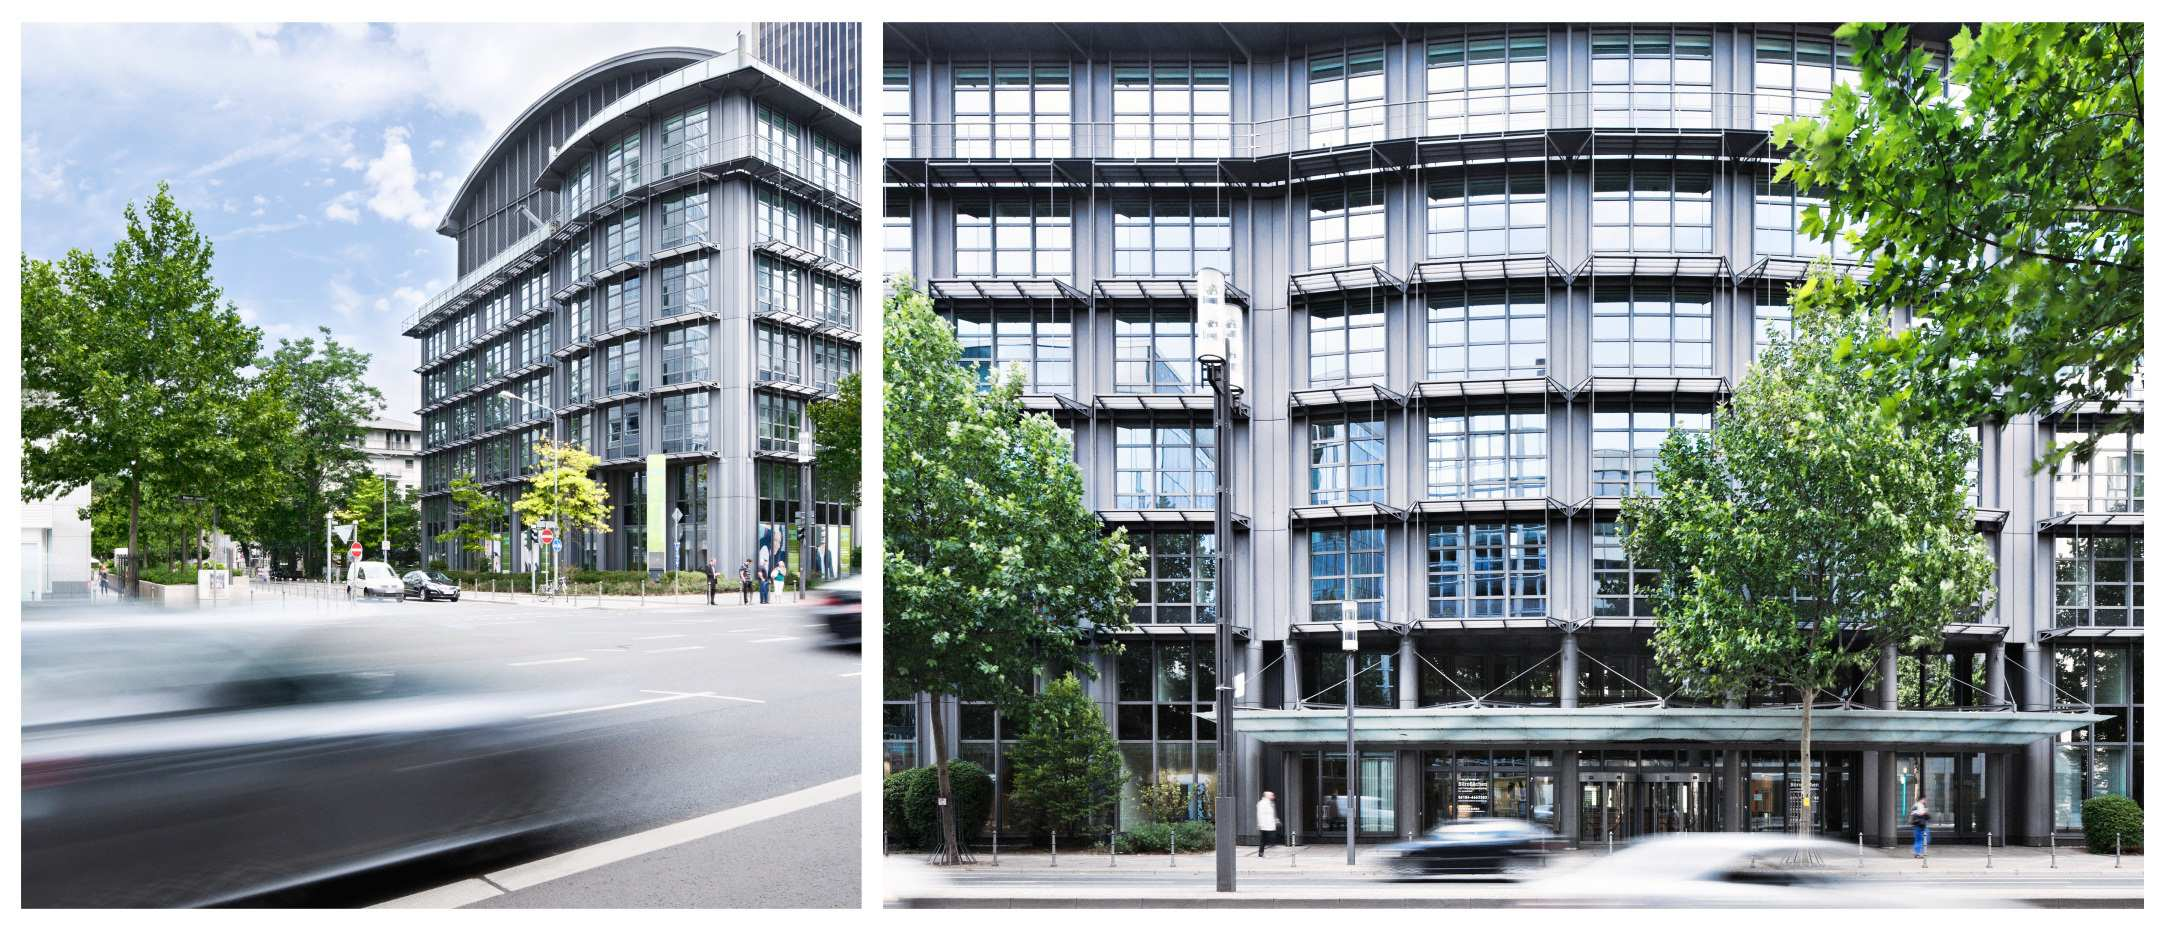 CONFERENCING IN DER FRANKFURTER CITY ecos